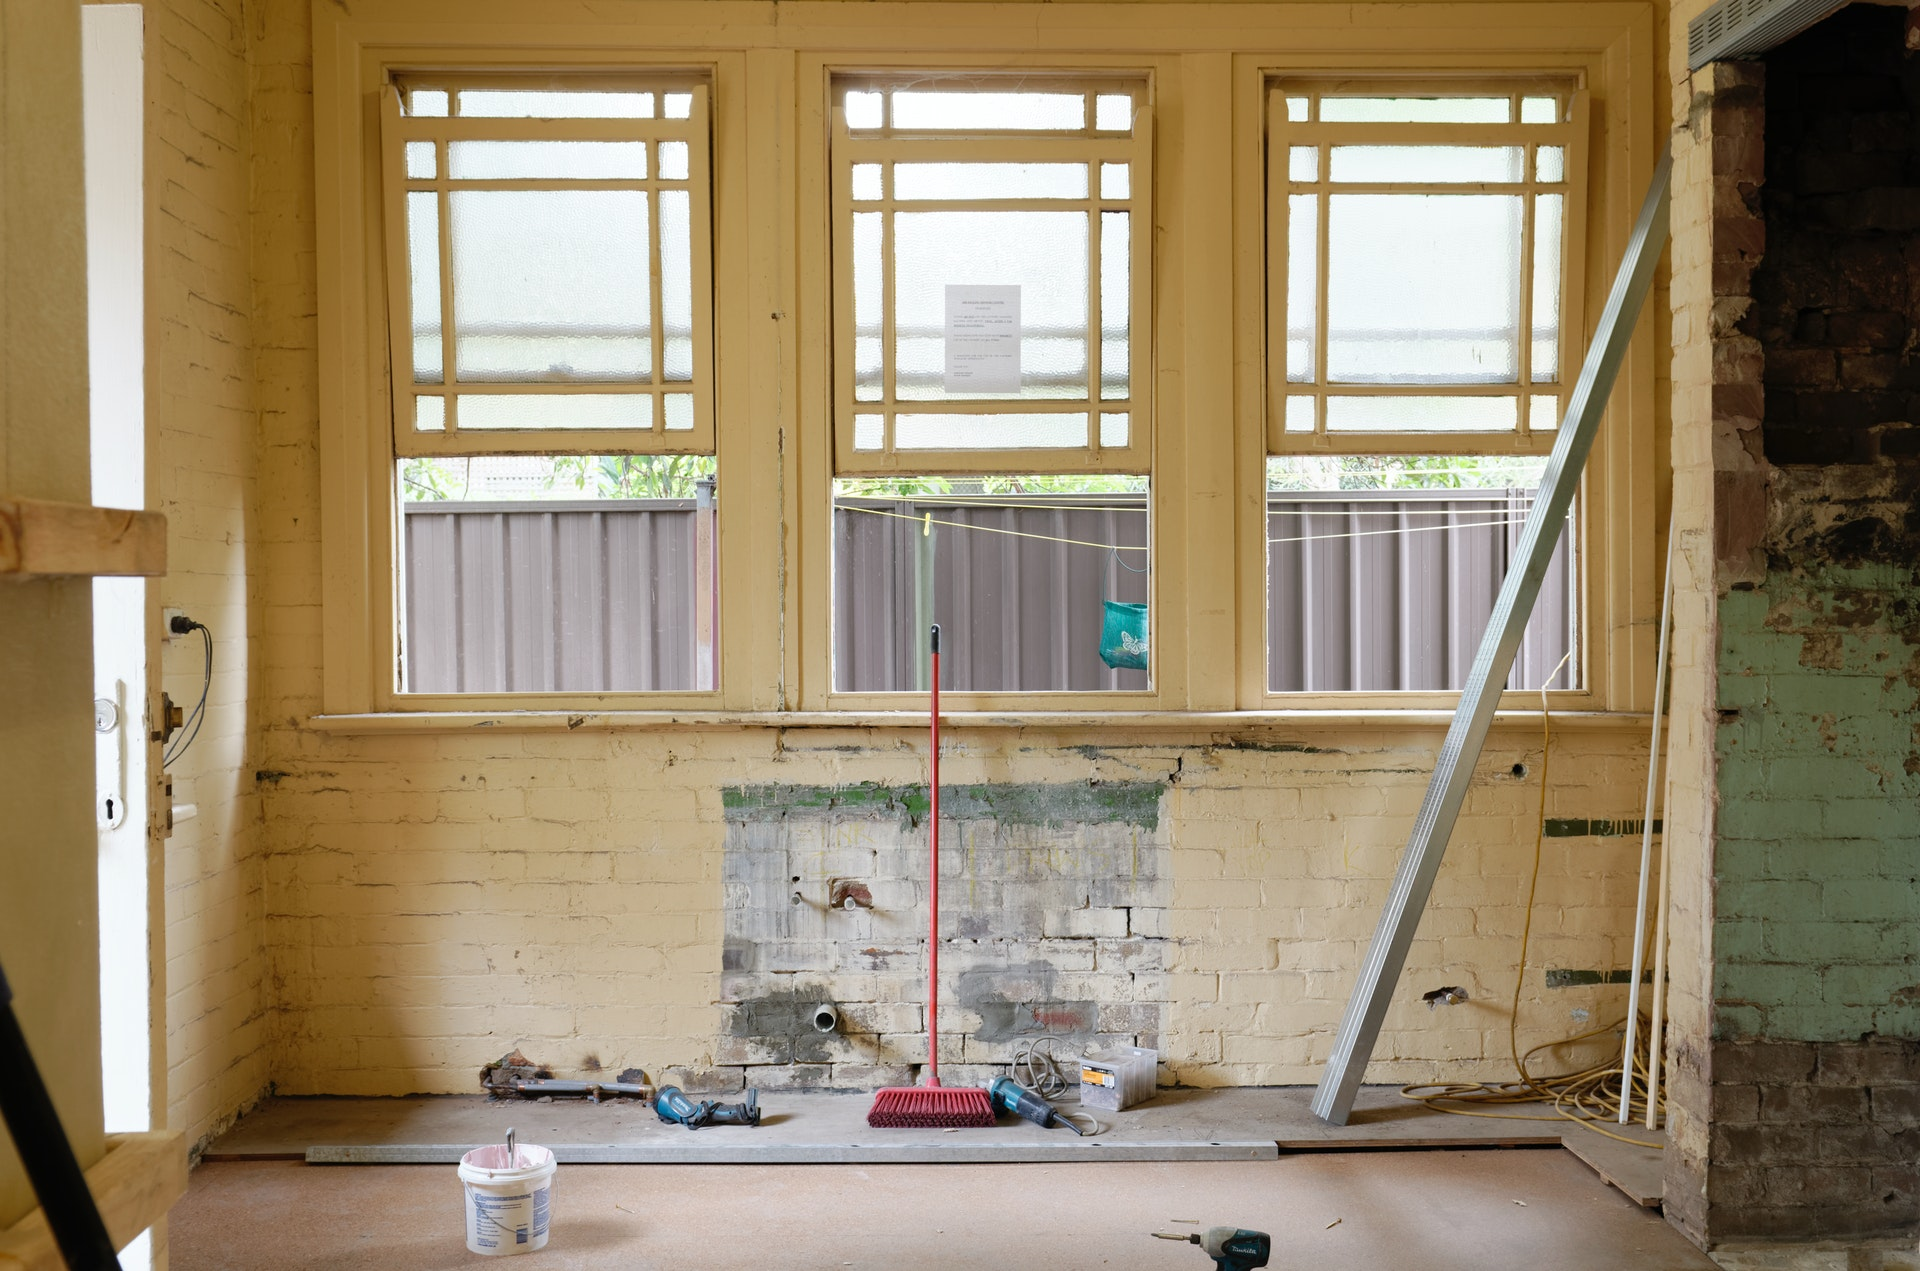 What to Consider When Remodeling an Old Home